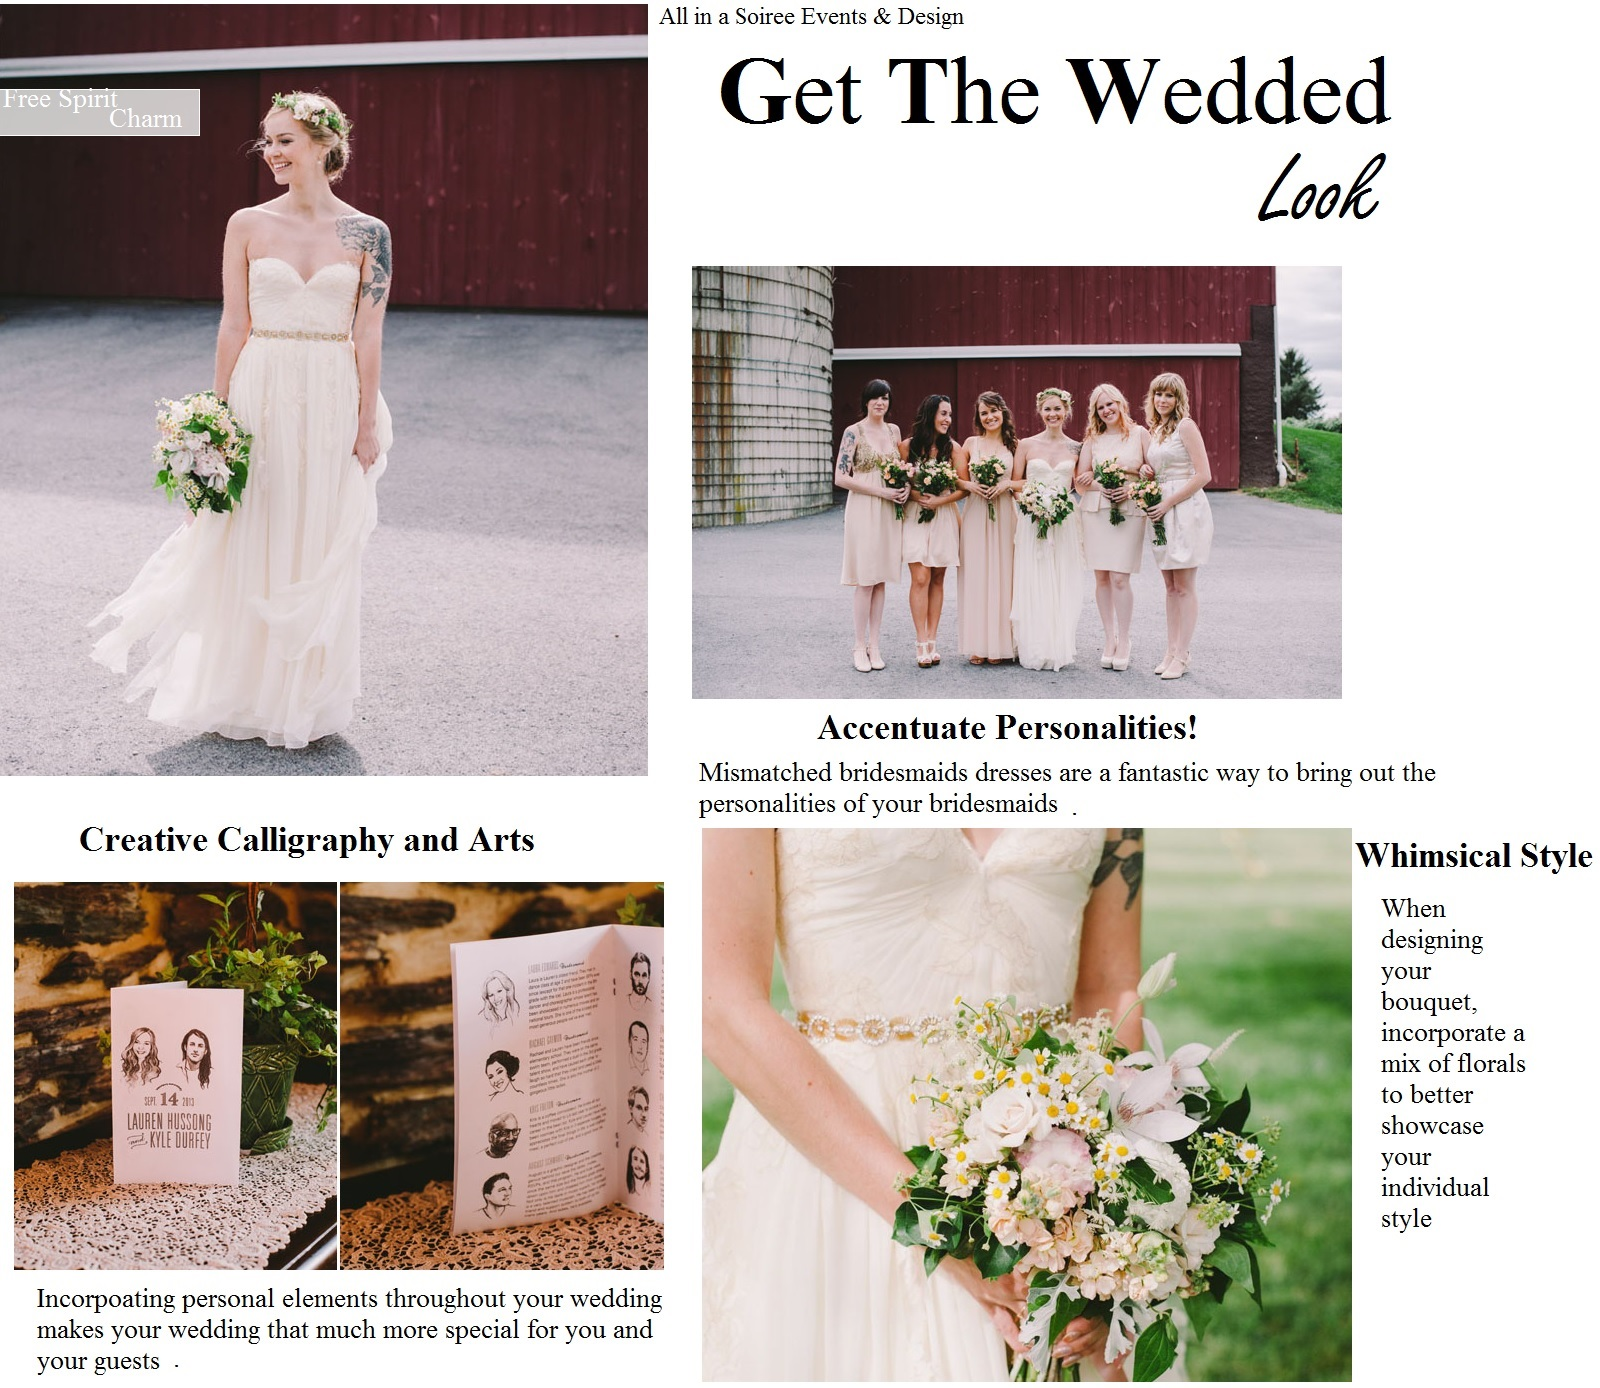 Get the Wedded Look: Free Spirit Wedding Style